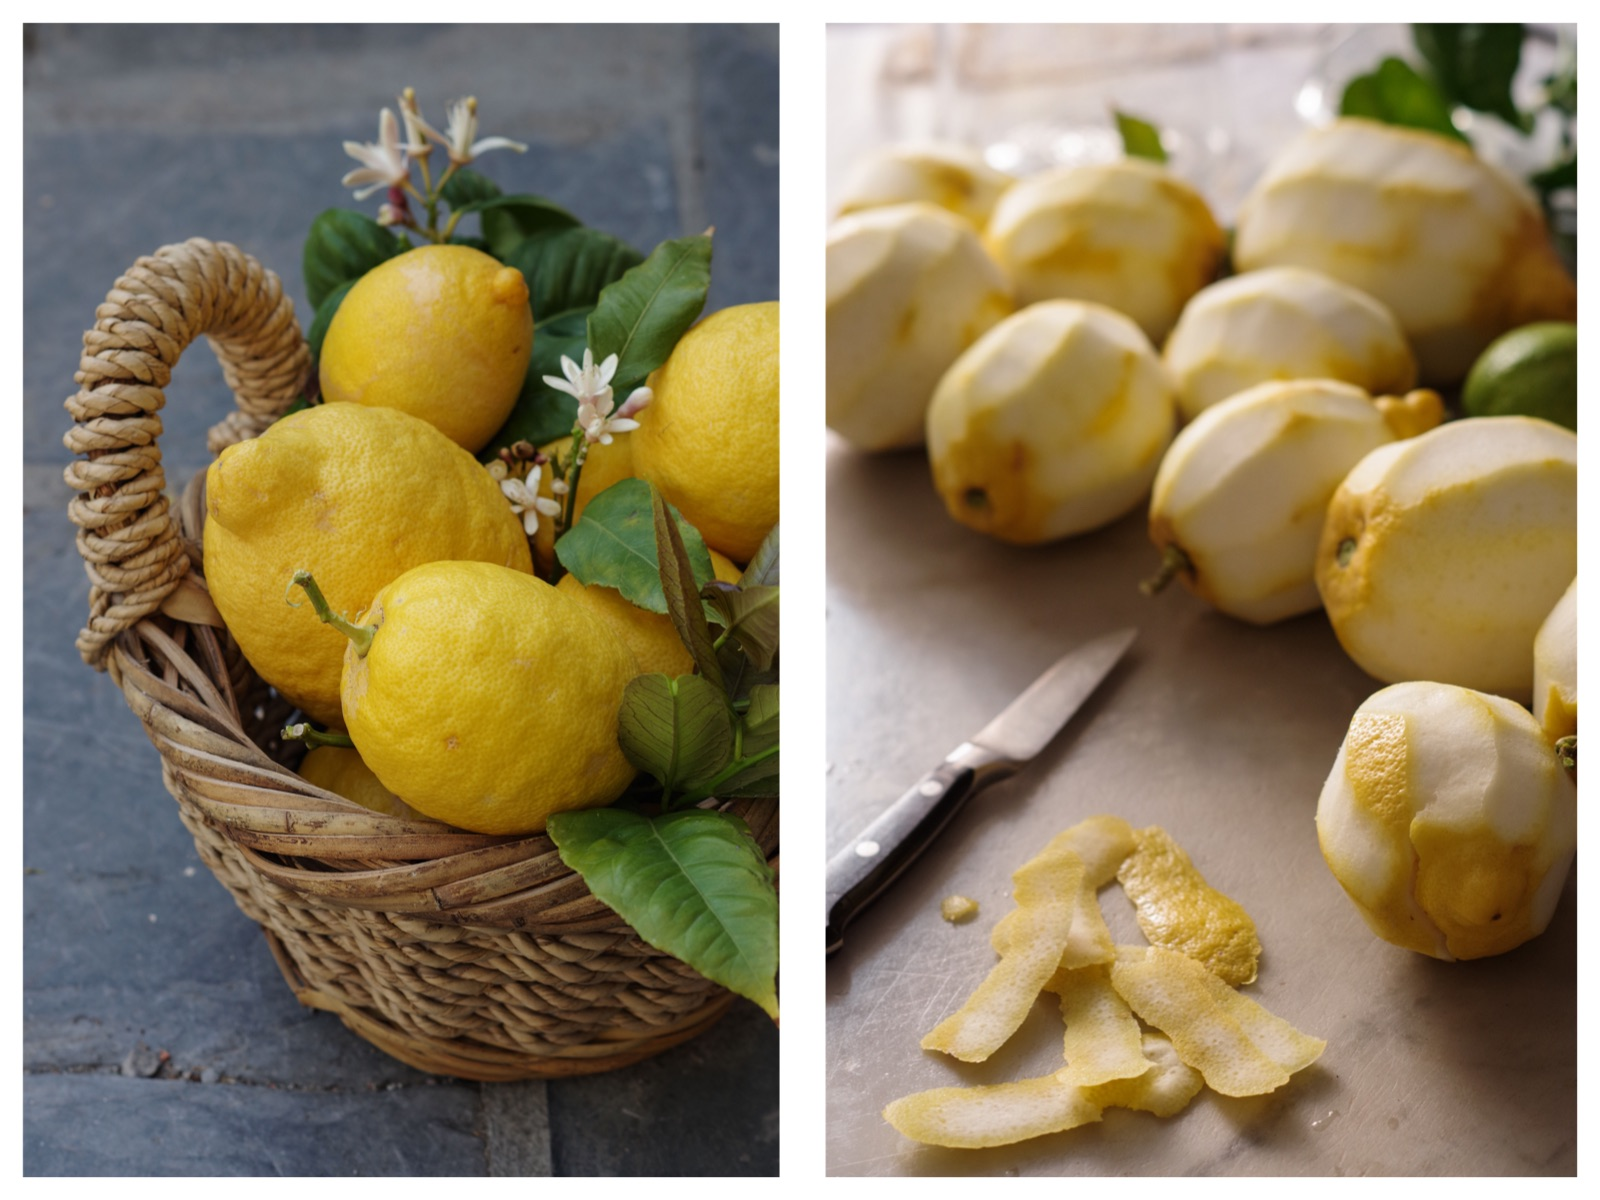 How to make limoncello recipe with Italian Riviera lemons